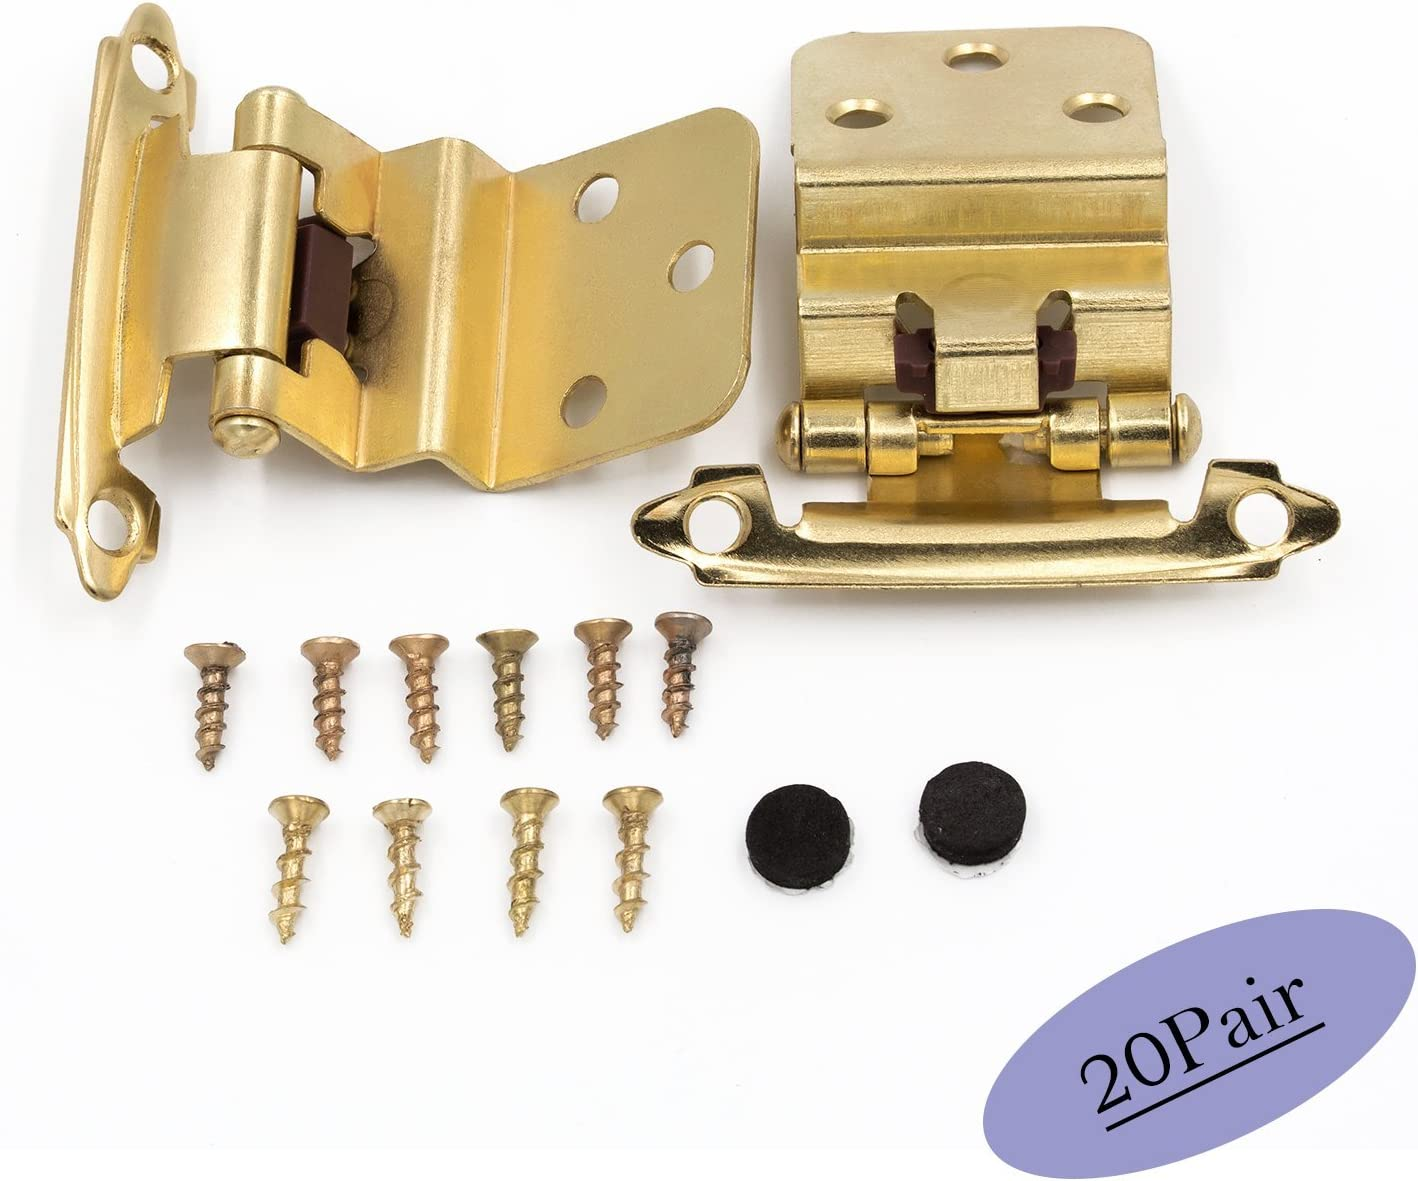 Inset 15 Pair Goldenwarm Self-Closing Hinge Face Mount for Kitchen Cabinet Cupboard Door SCH38BB 3//8in Brushed Brass Inset Hinges 10mm